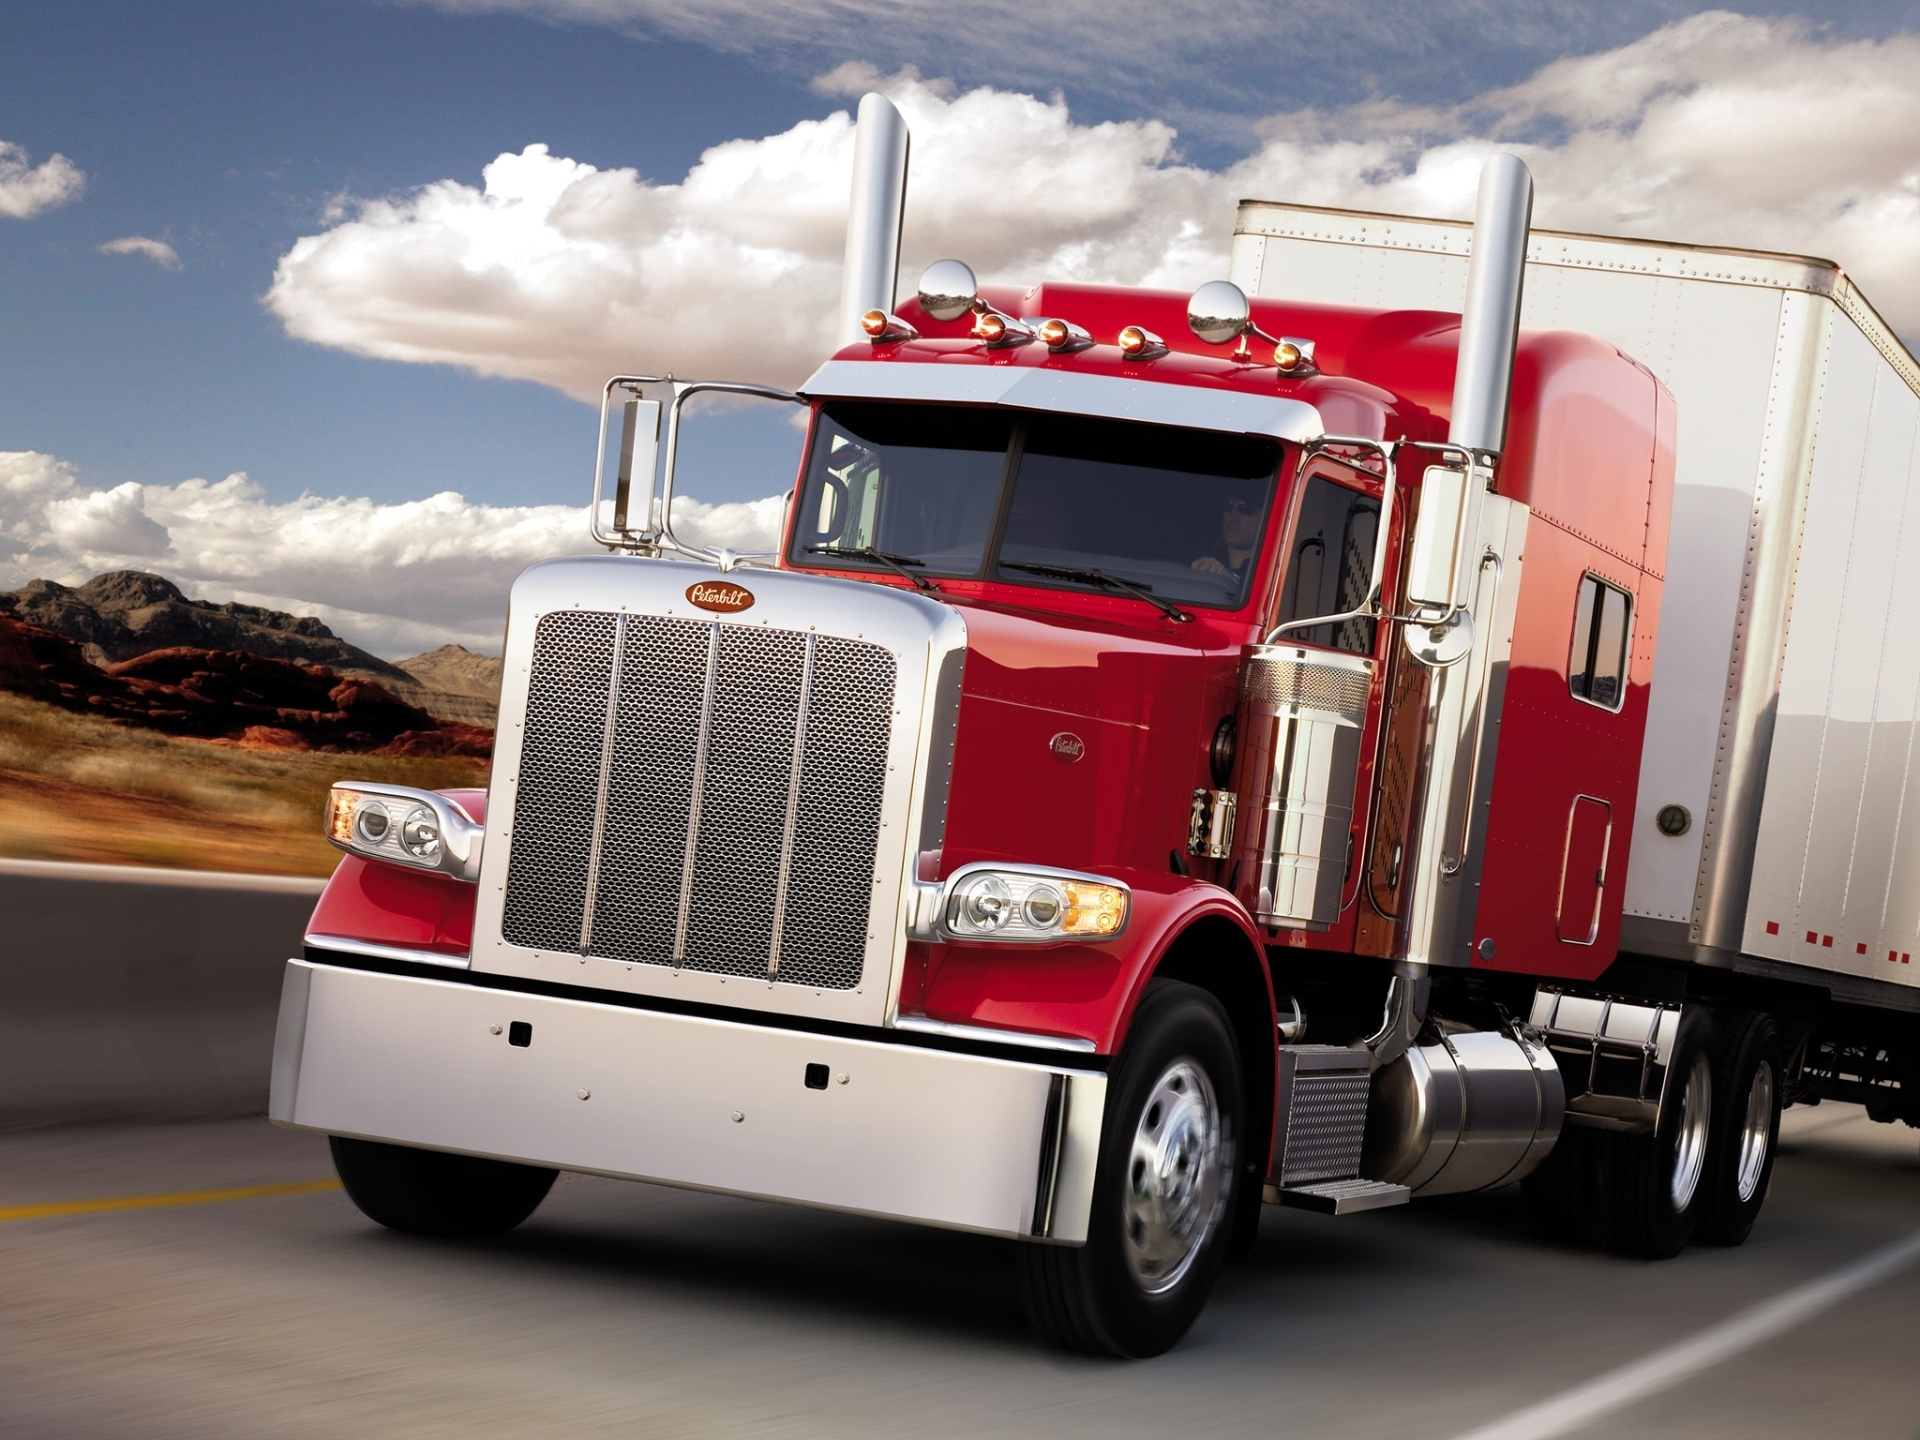 Peterbilt cargo truck wallpapers and images   wallpapers pictures 1920x1440